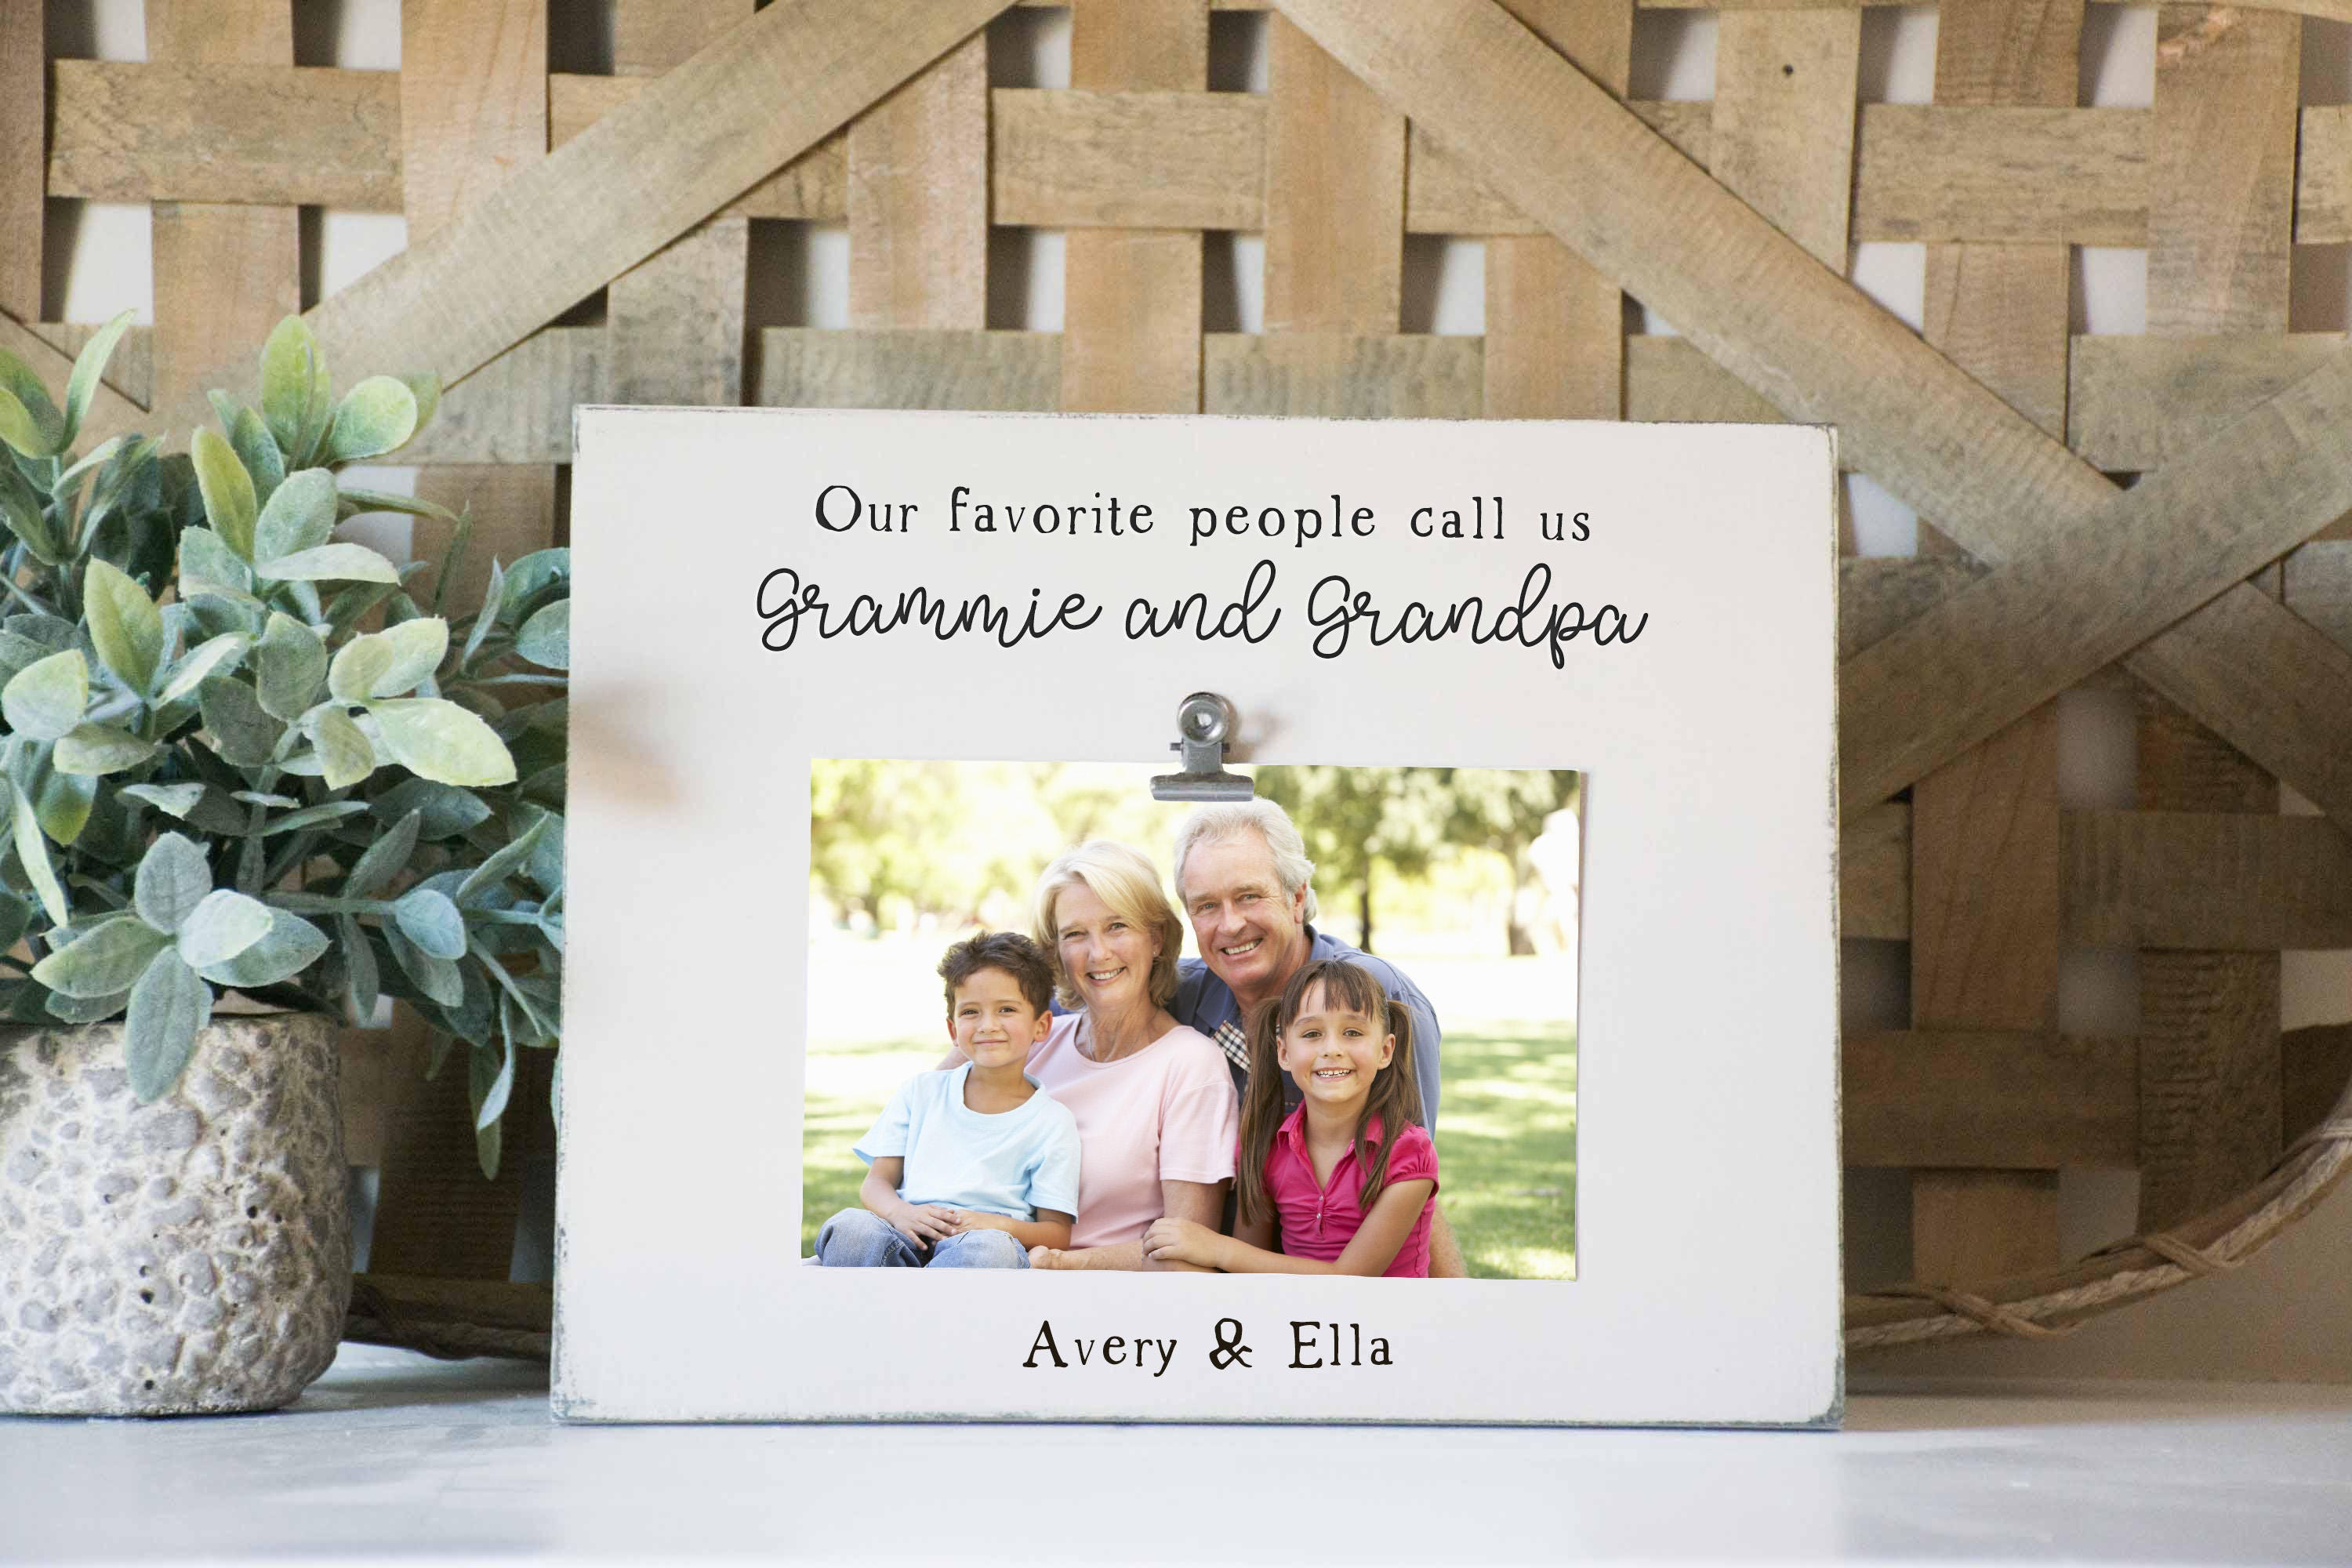 Grandparents Picture Frame Favorite people call us | Etsy